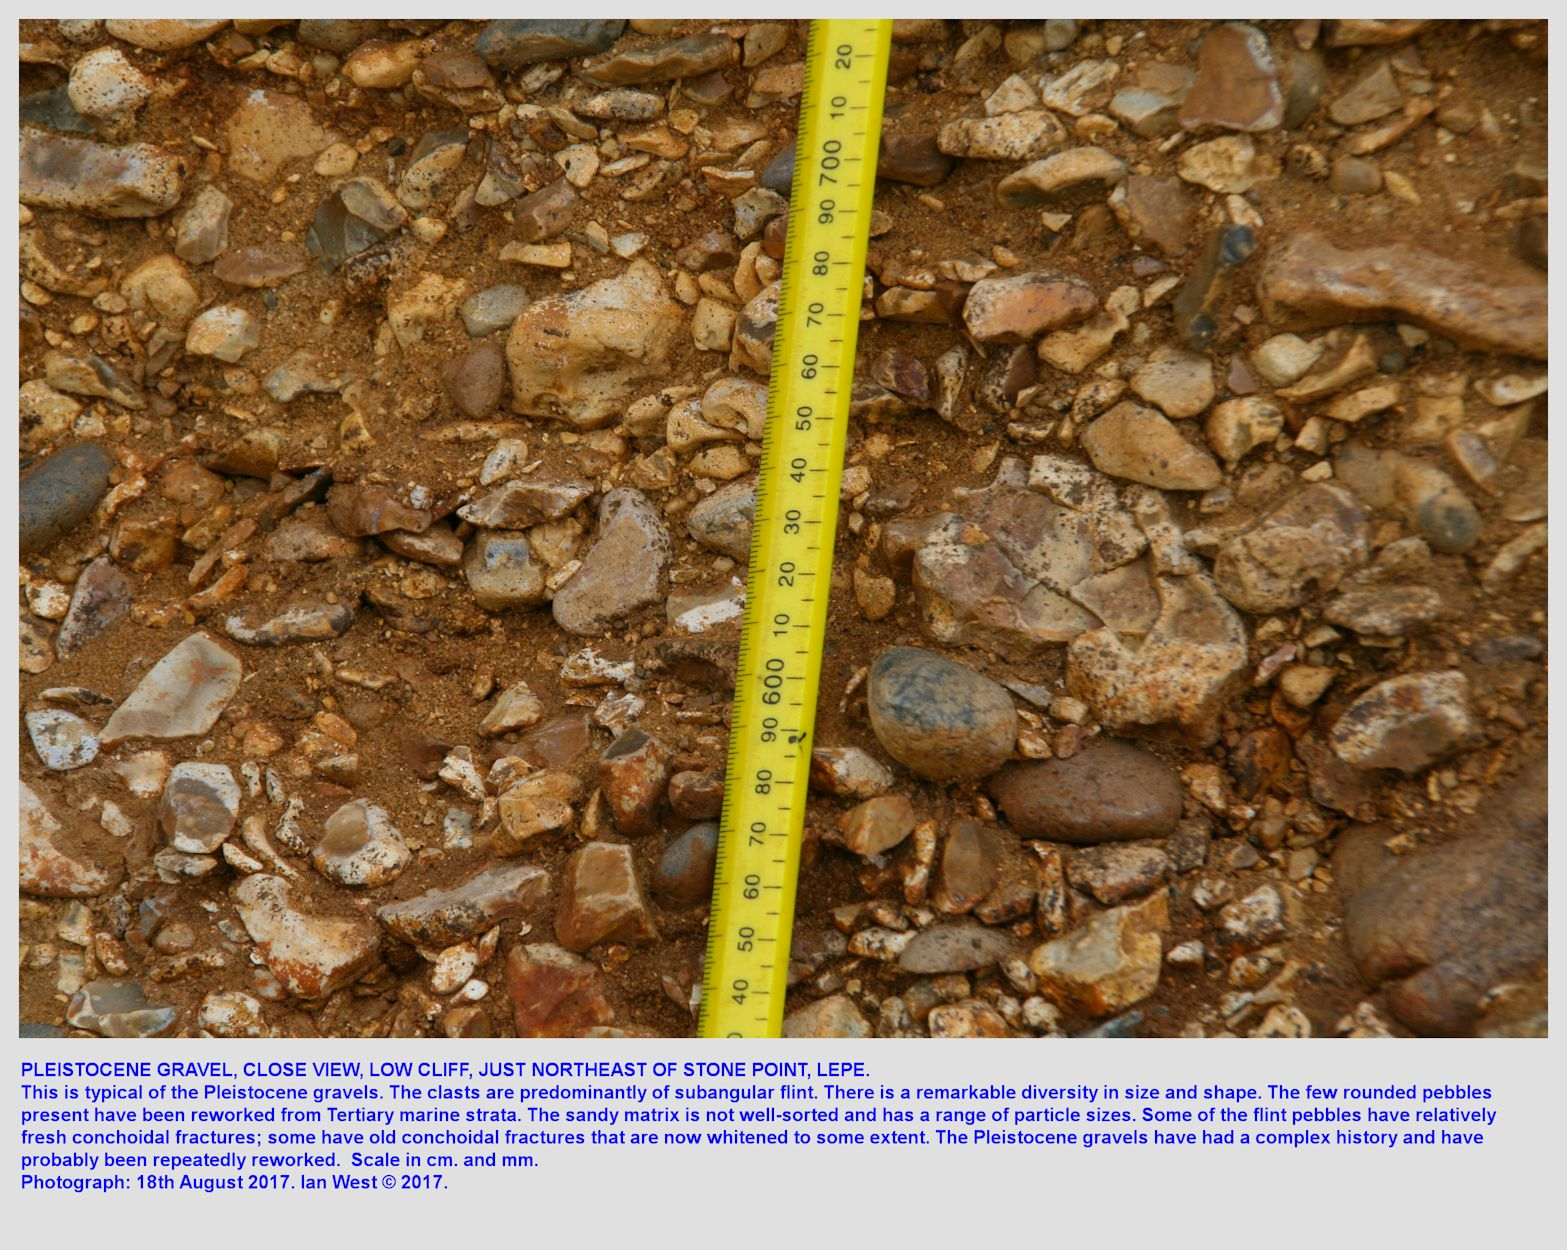 Pleistocene gravel, Lepe Beach, Hampshire, east of the beach car park and below the Country Park area, 18th August 2017